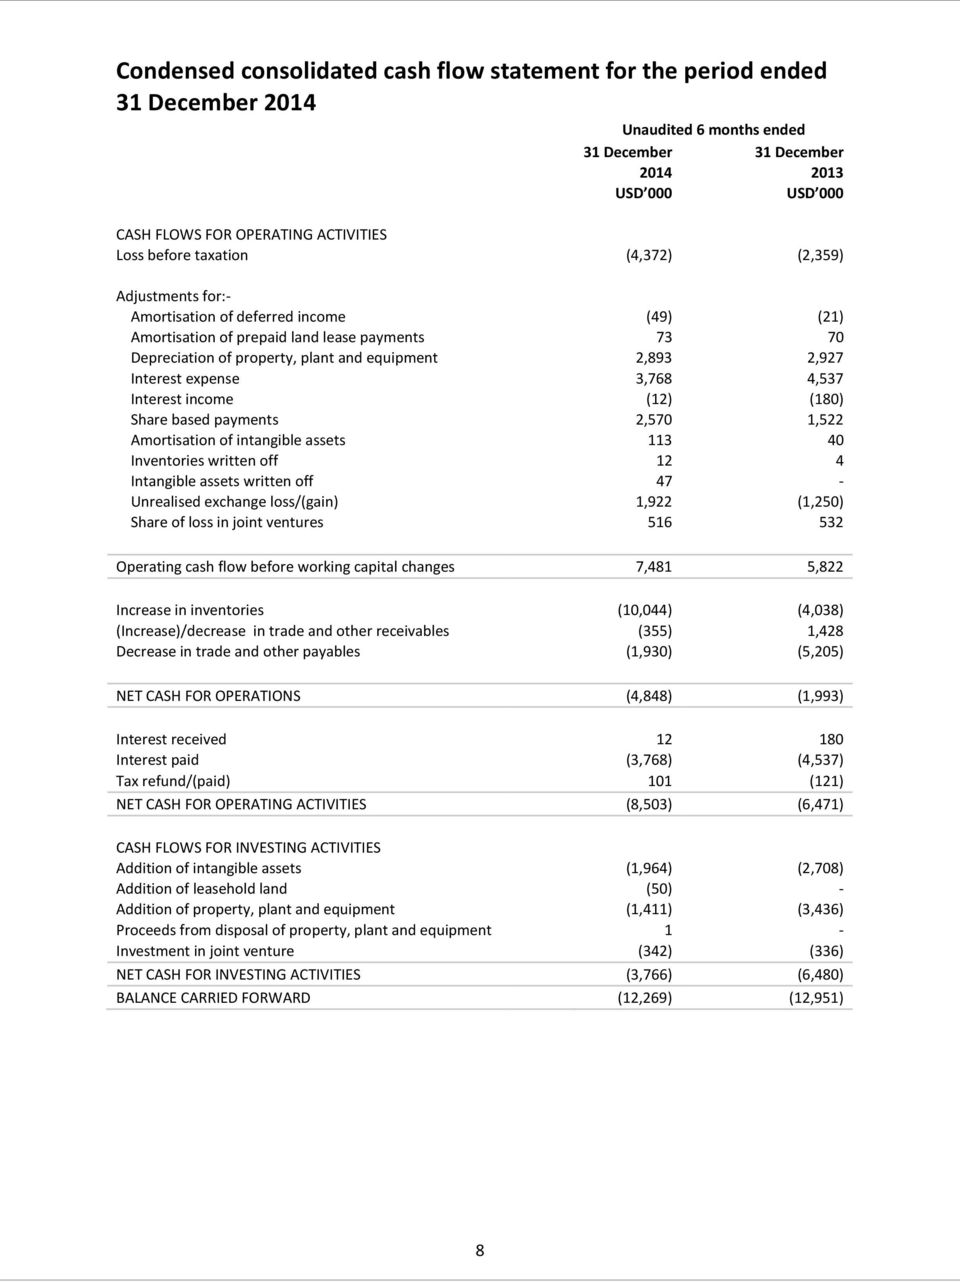 expense 3,768 4,537 Interest income (12) (180) Share based payments 2,570 1,522 Amortisation of intangible assets 113 40 Inventories written off 12 4 Intangible assets written off 47 - Unrealised